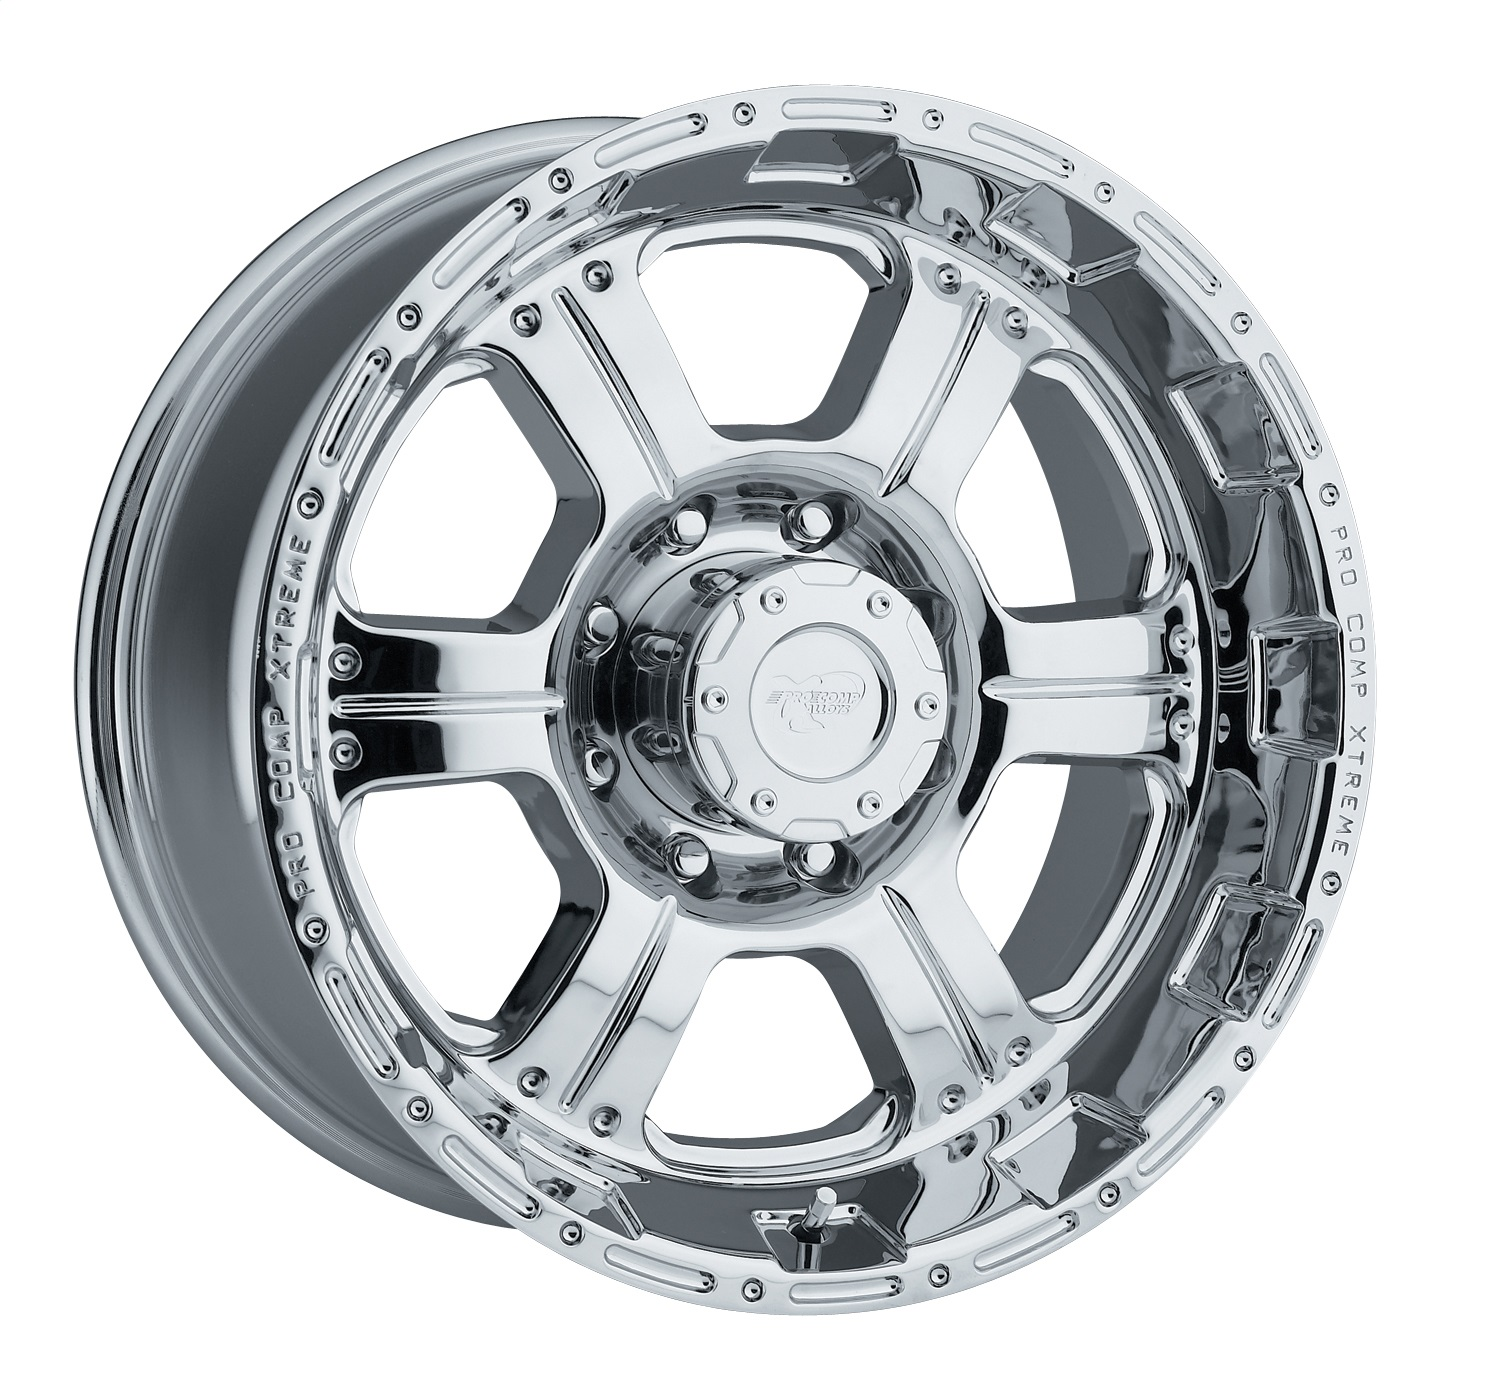 Pro Comp Alloy 6089-7982 Xtreme Alloys Series 6089 Chrome Finish; Size 17x9; Bolt Pattern 8x6.5 in.; Back Space 4.75 in.;